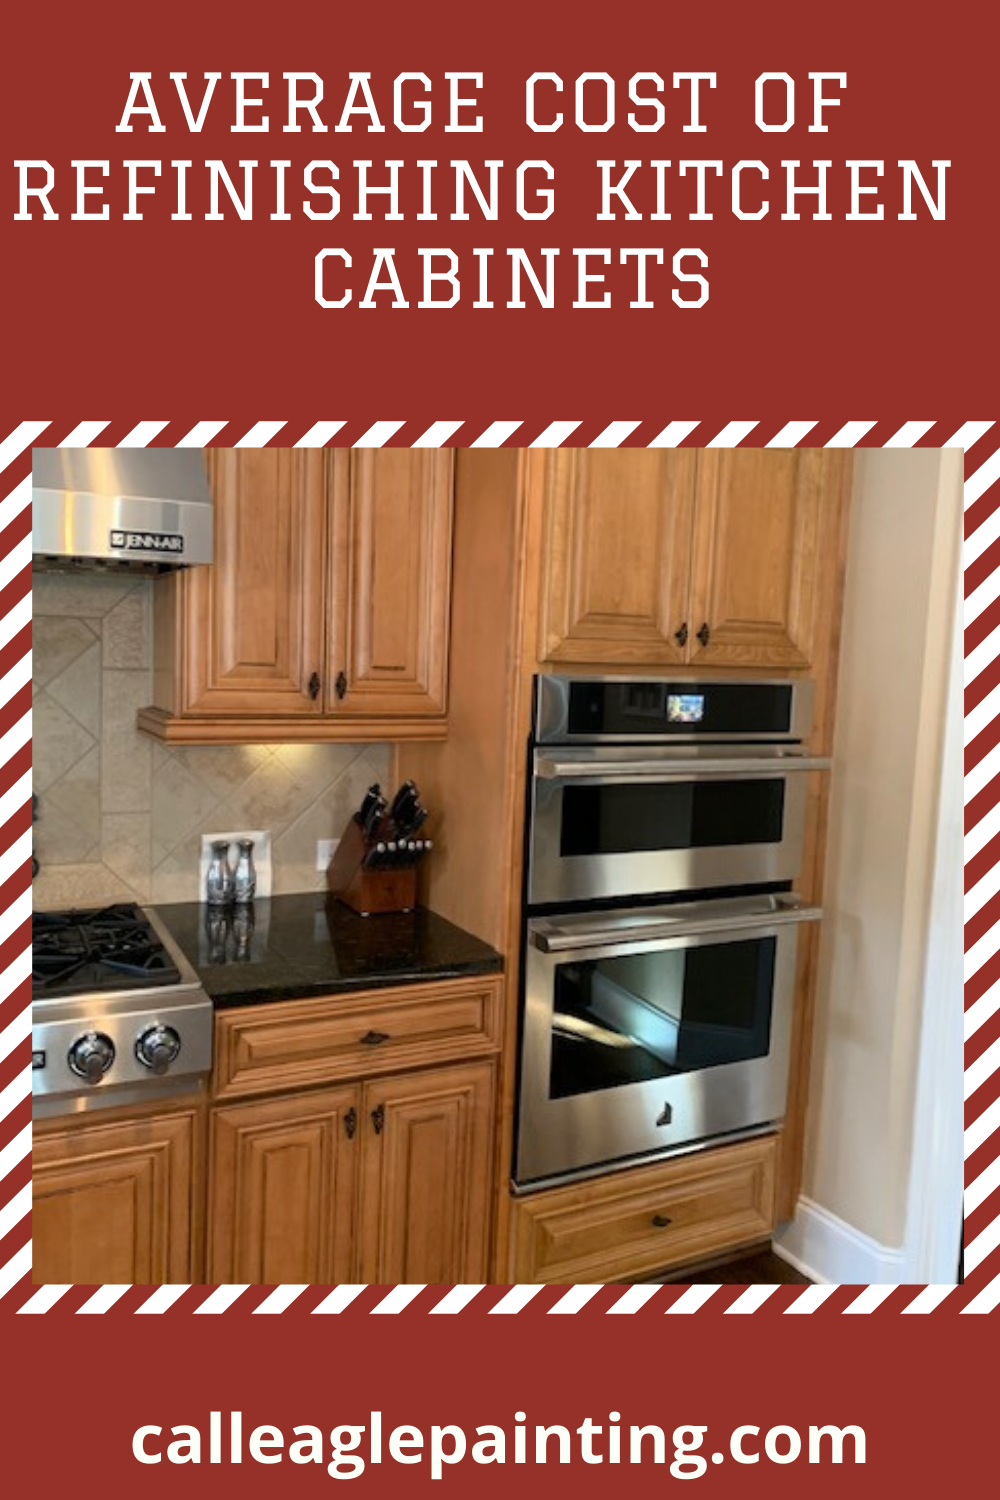 Average Cost Of Refinishing Cabinets Best Value For High Quality